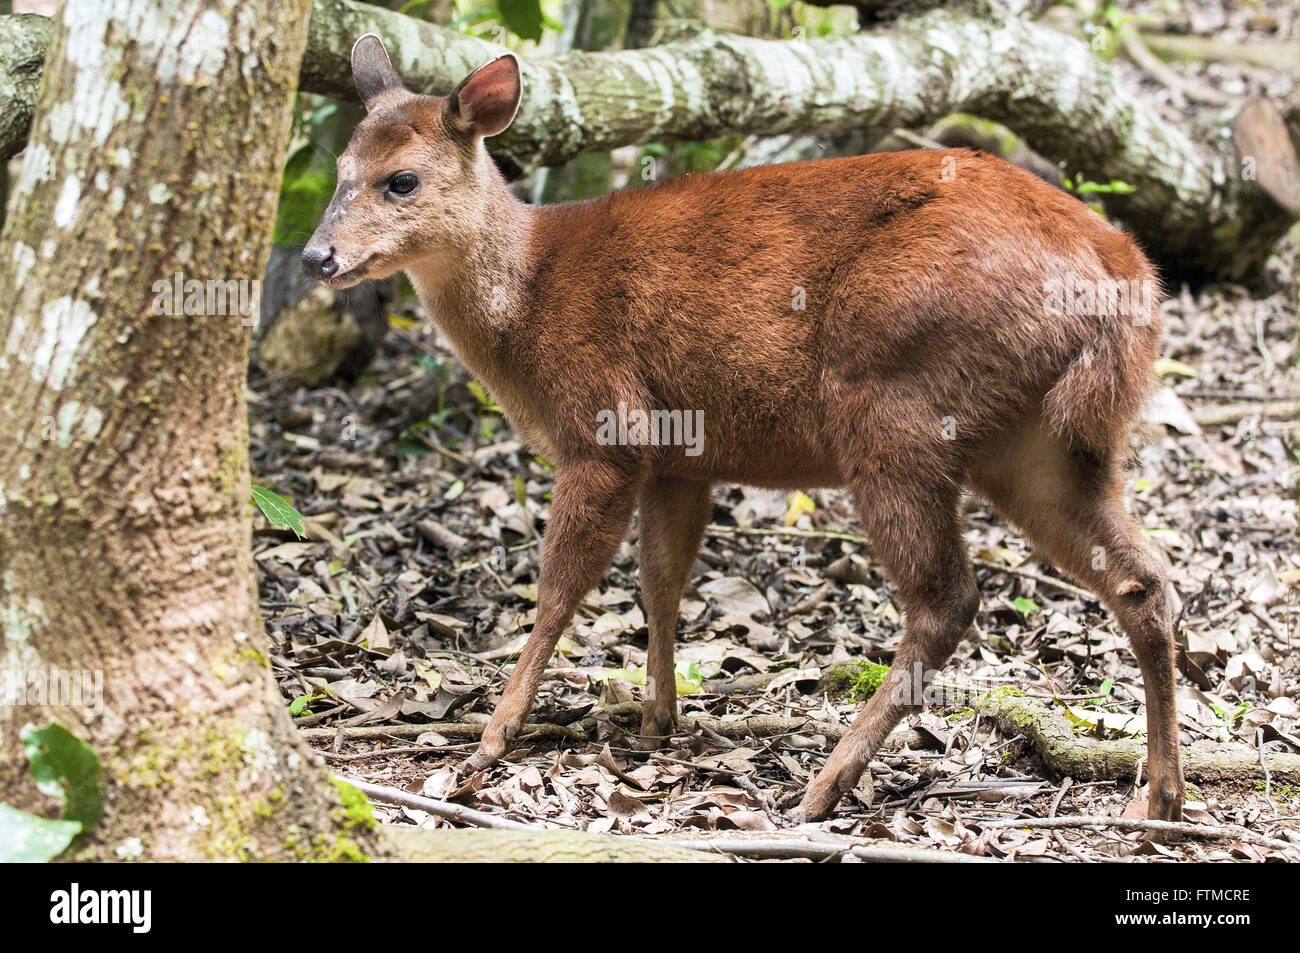 Deer Bororo also called deer cambuta - Stock Image